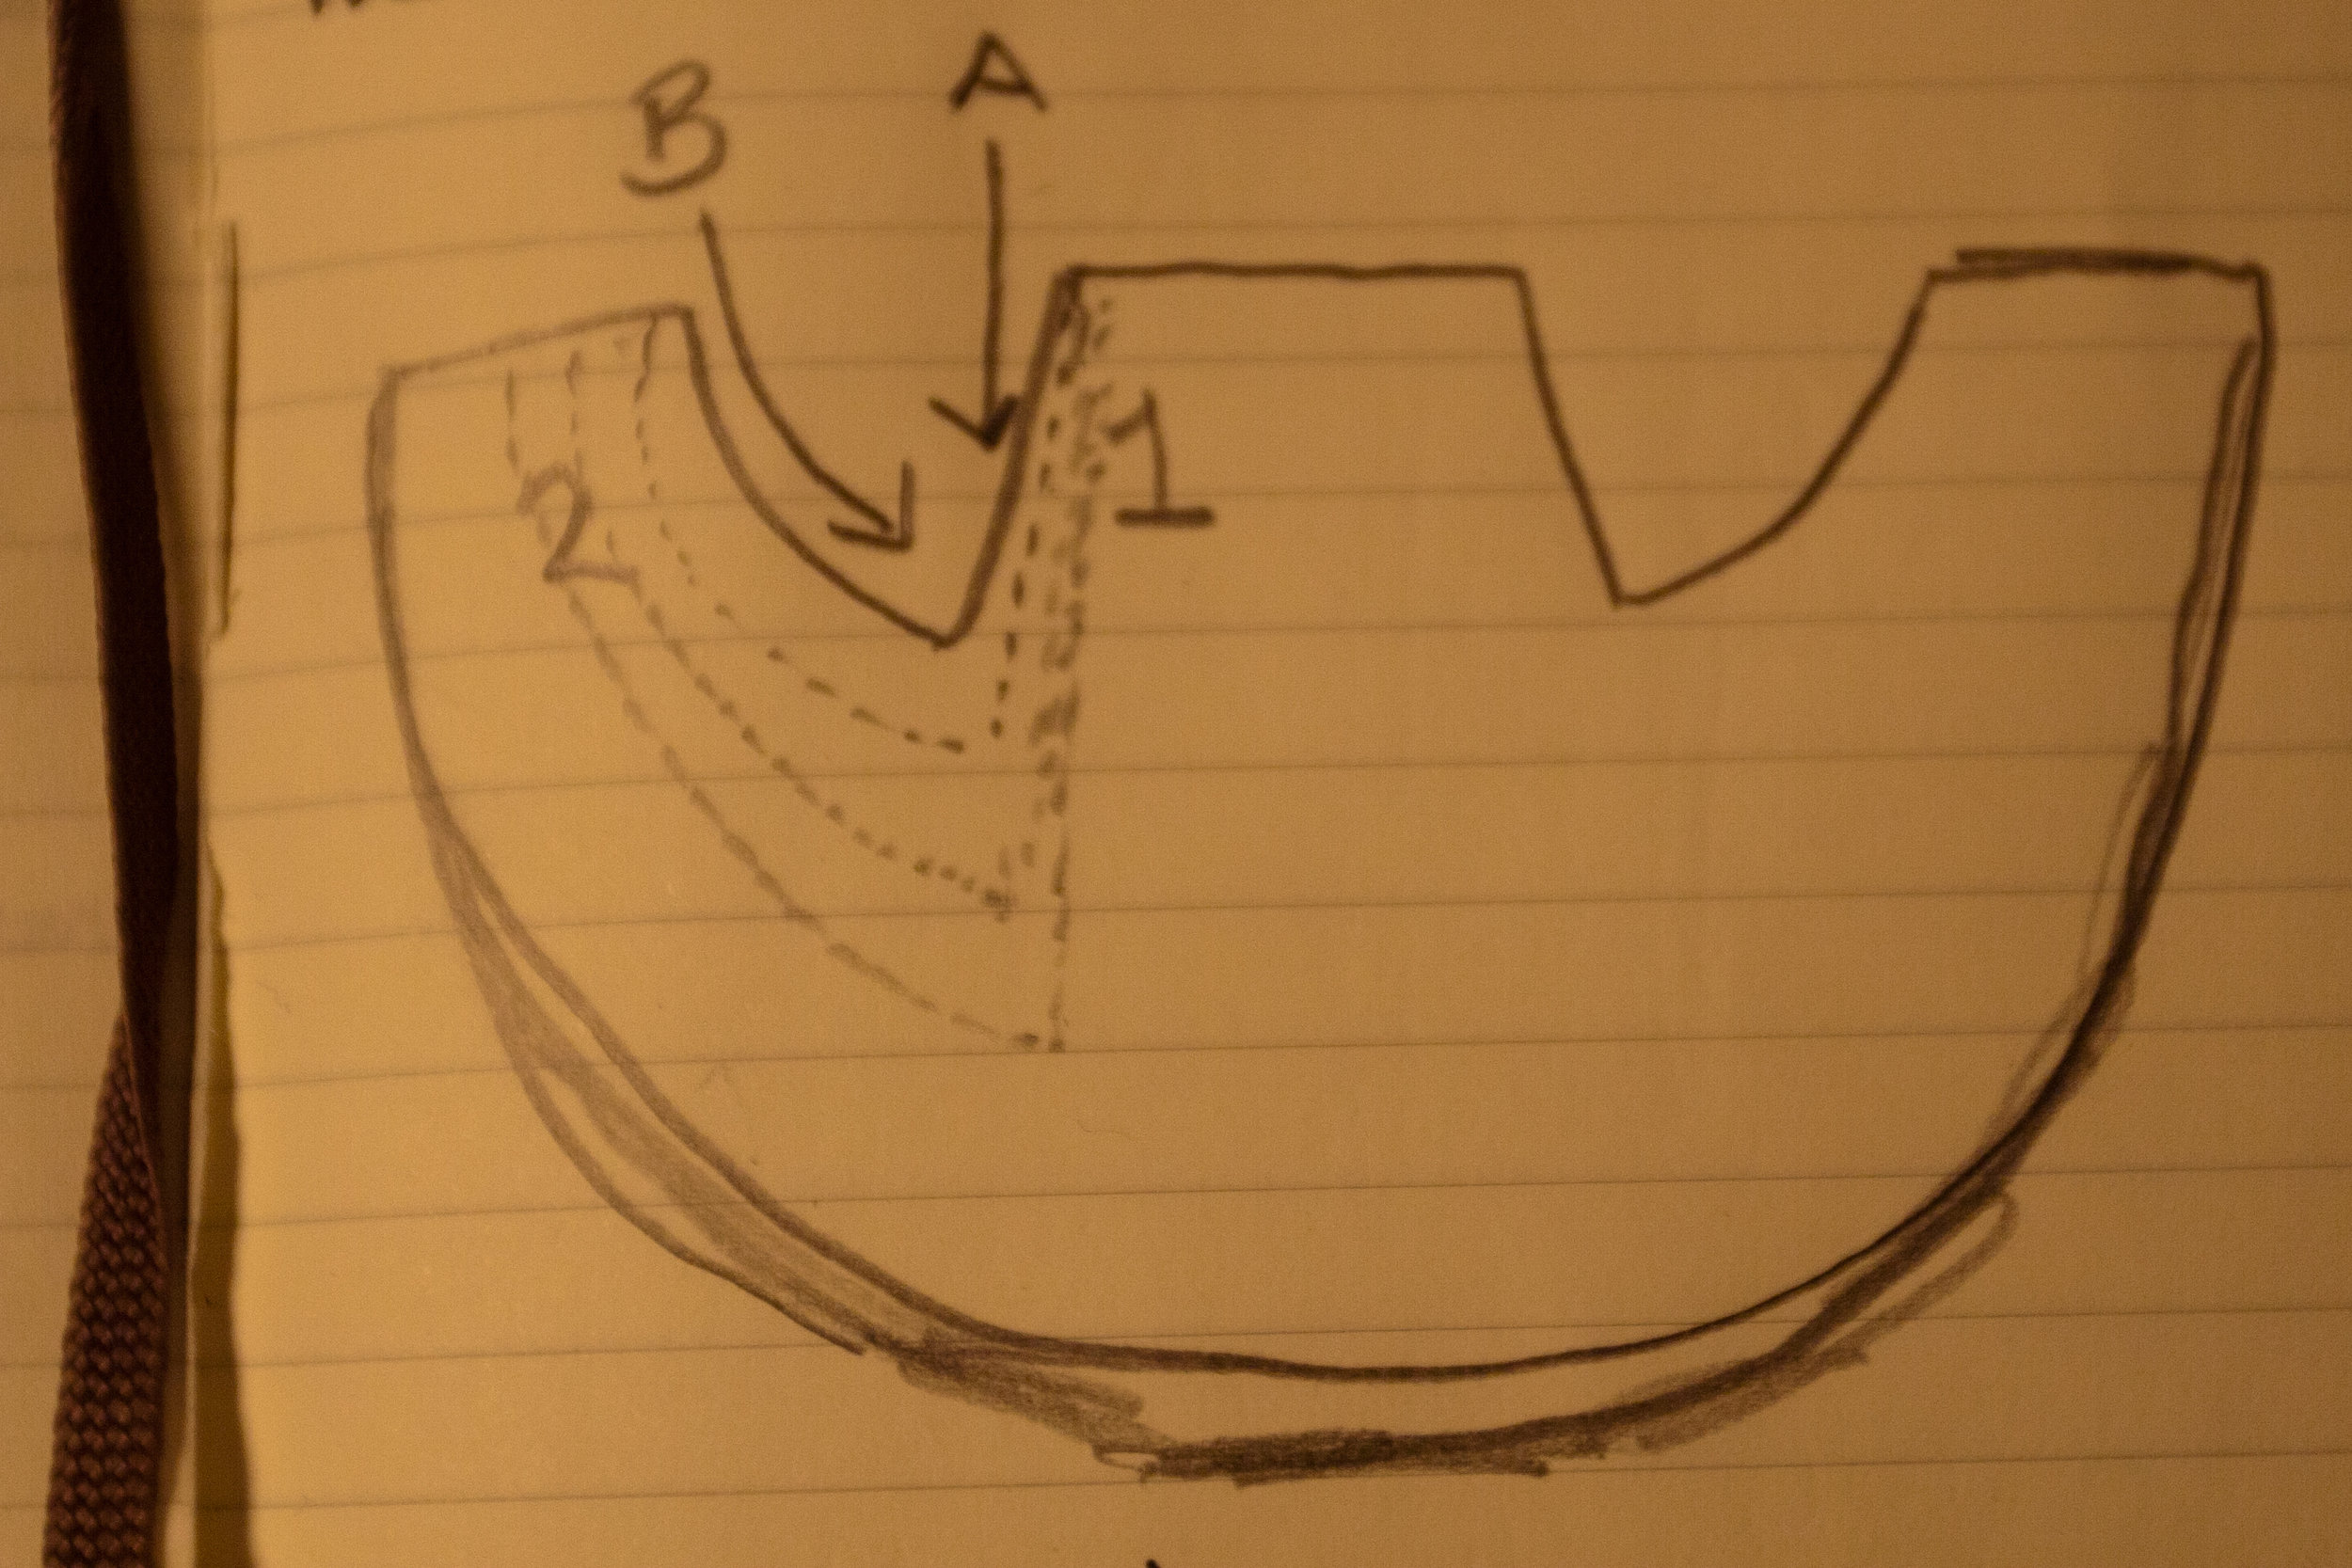 Bowl hollowing diagram sketch